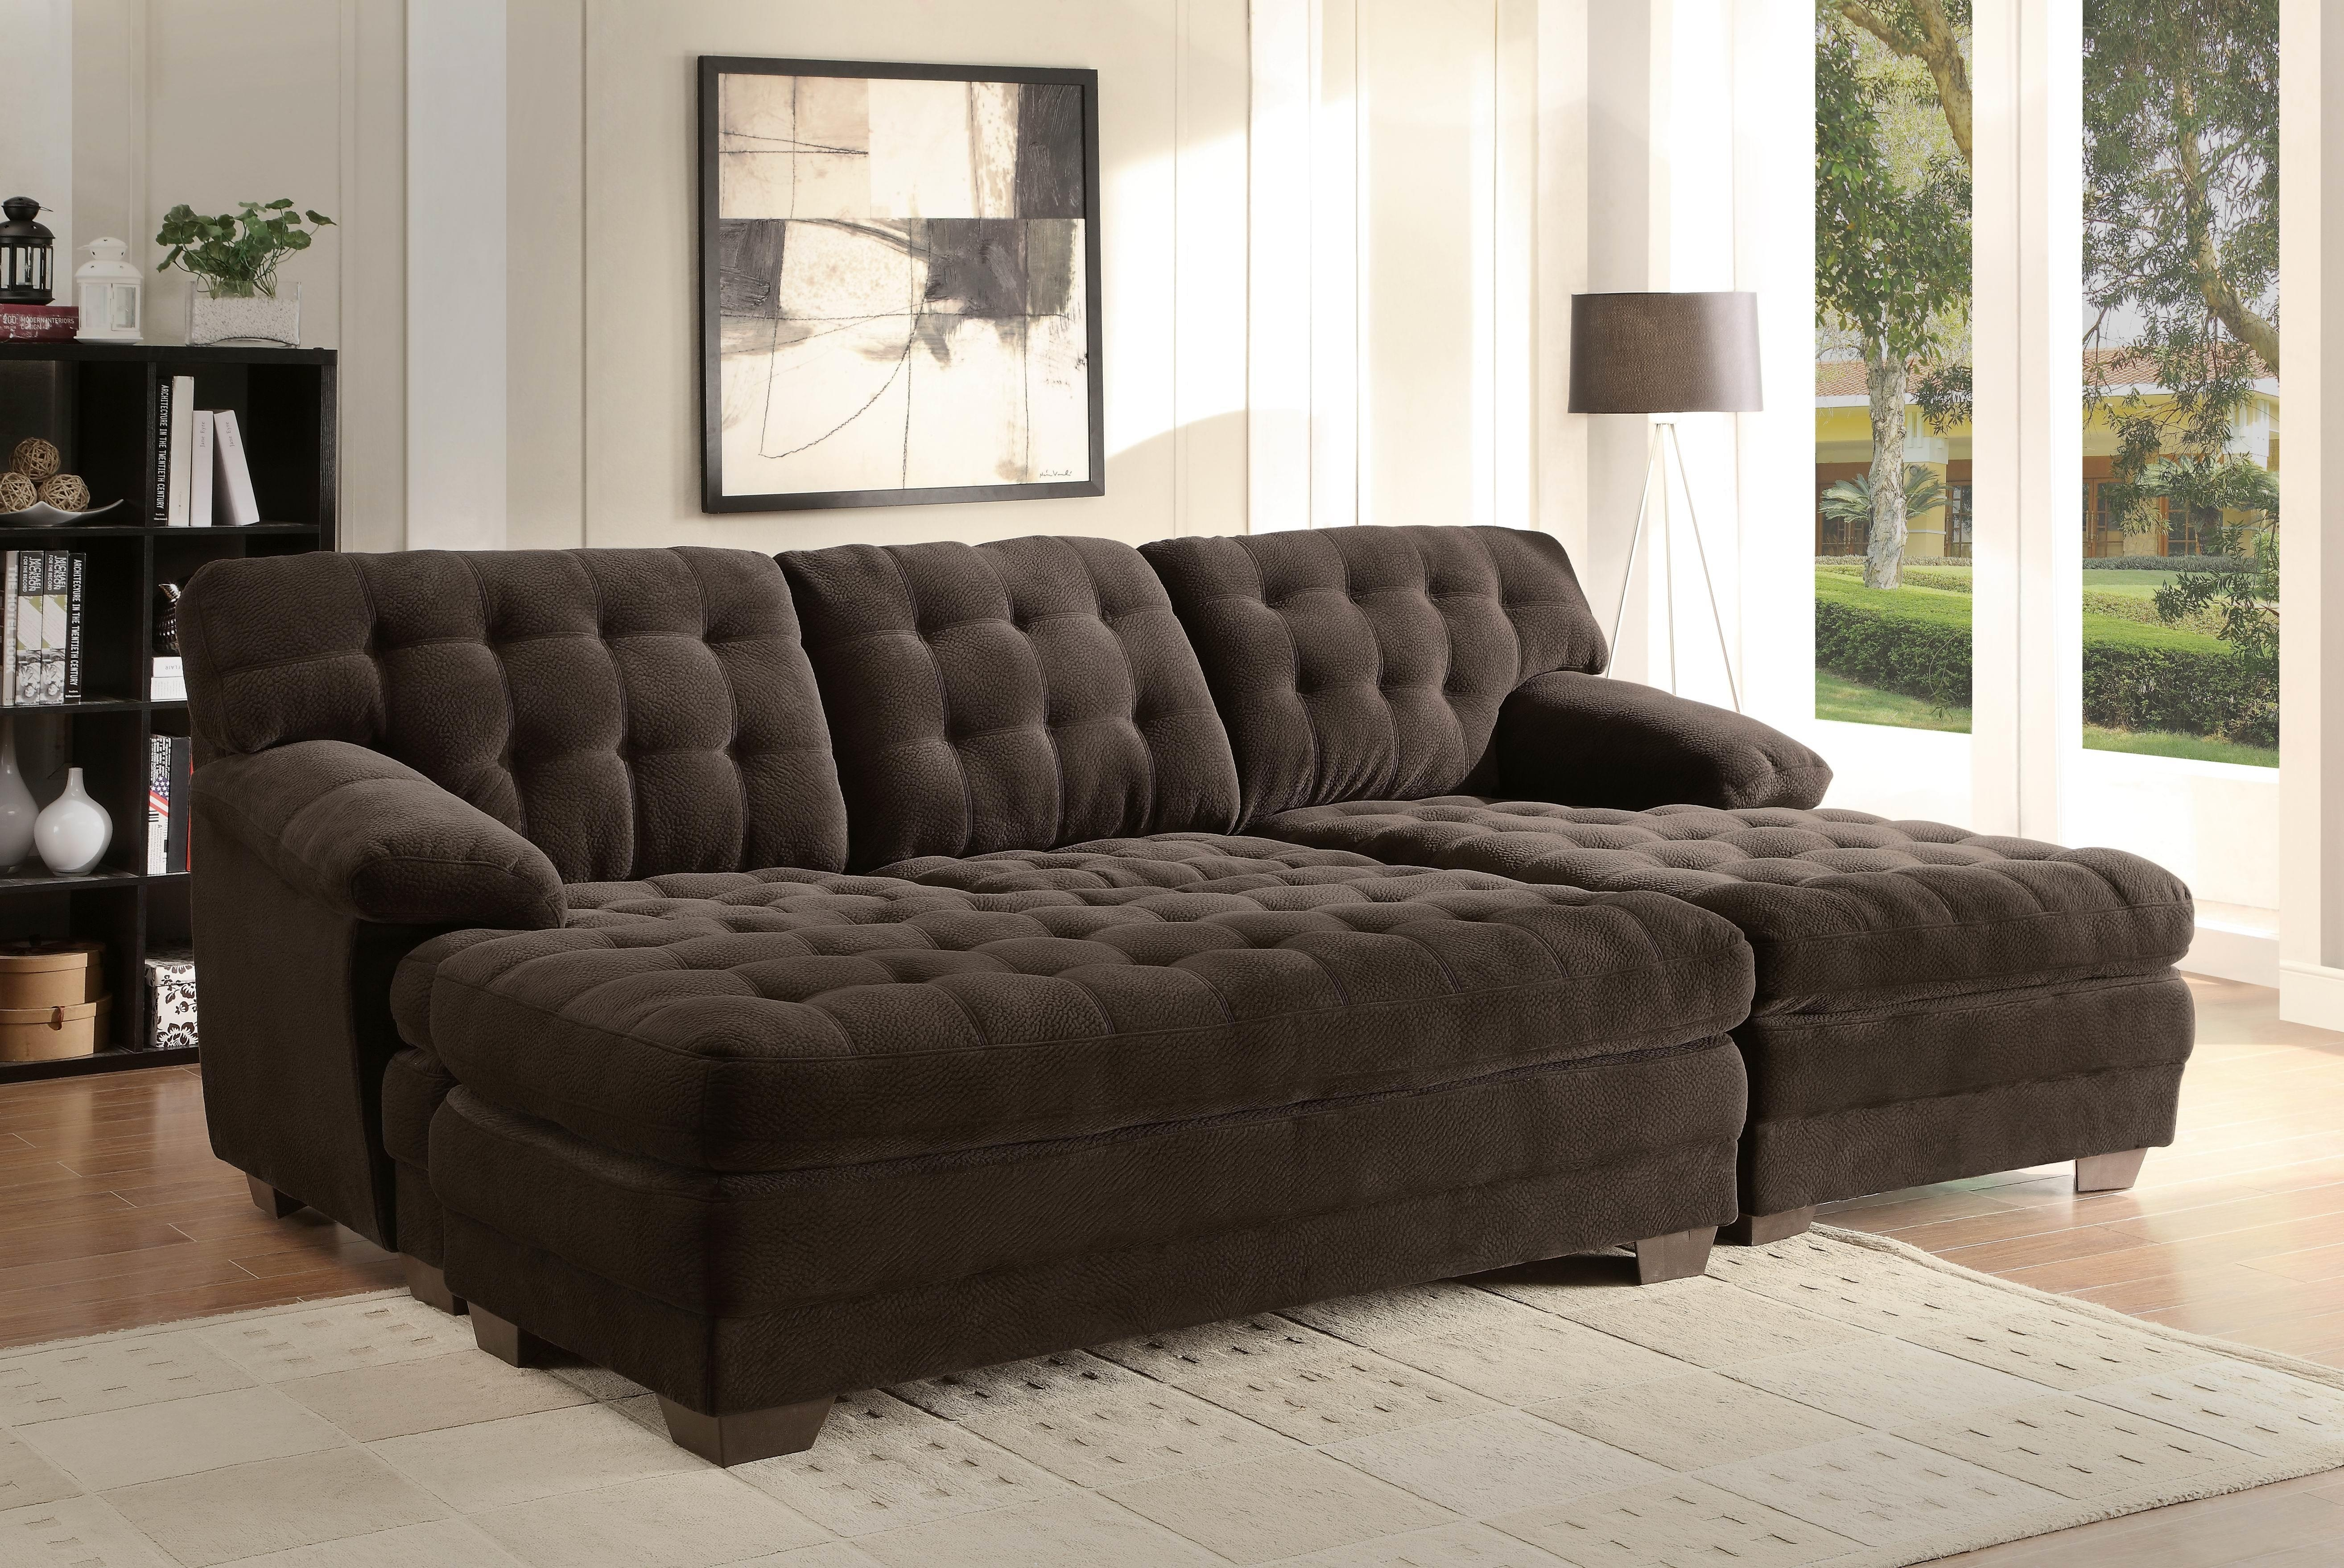 Decor Artificial Classic Corduroy Sectional Sofa For Unique In Extra Wide Sectional Sofas (#4 of 12)